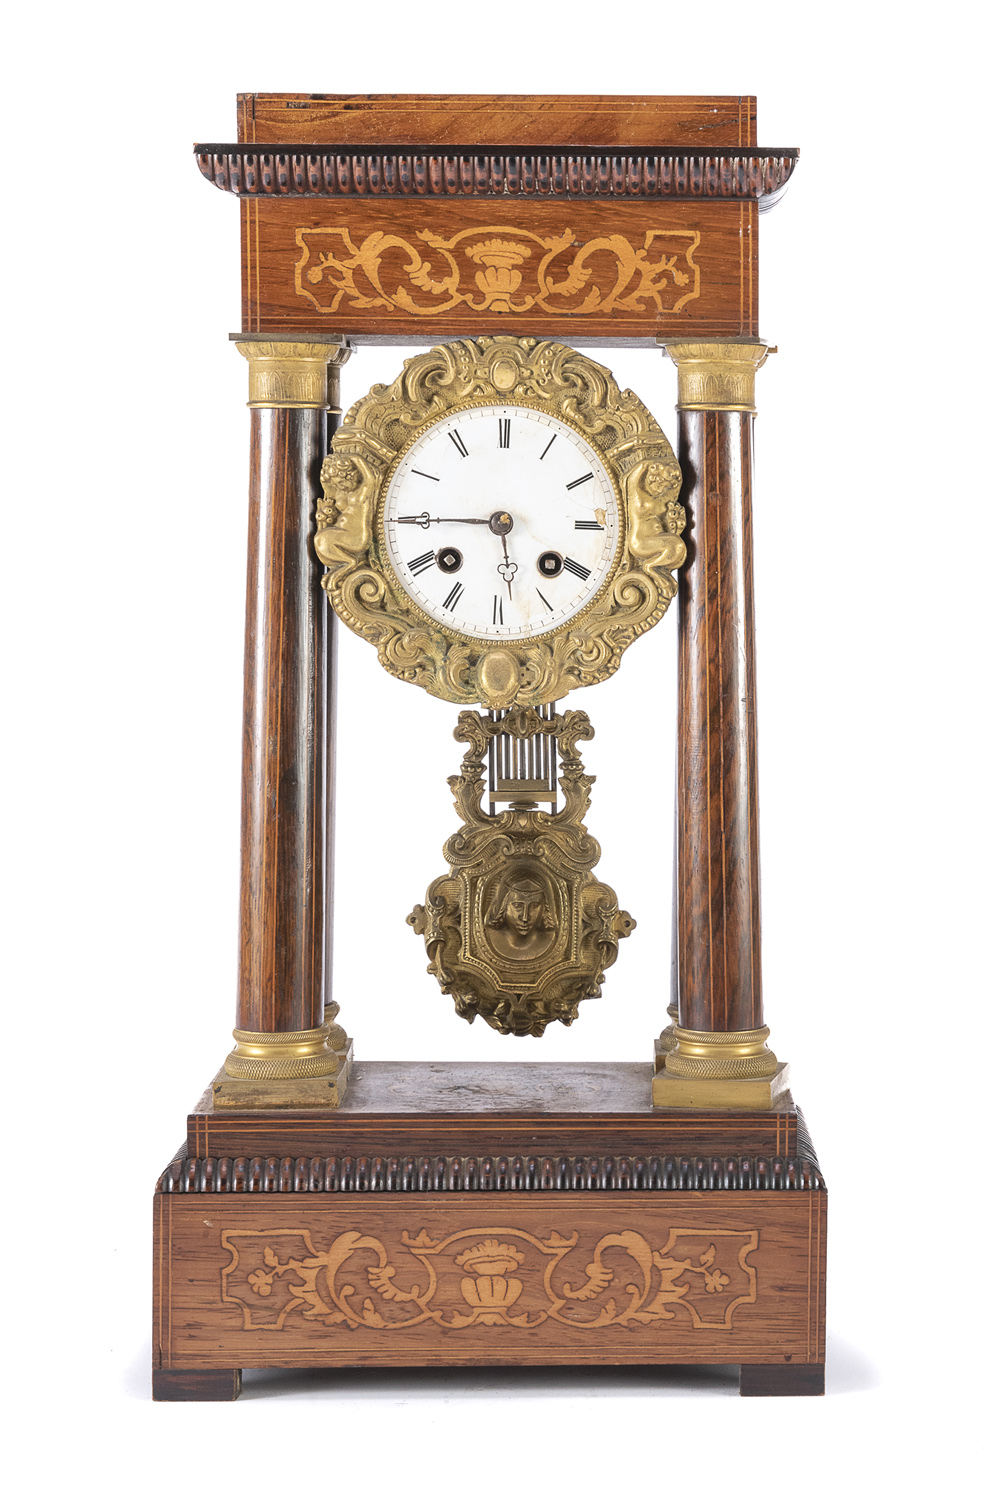 TABLE CLOCK IN ROSEWOOD 19th CENTURY